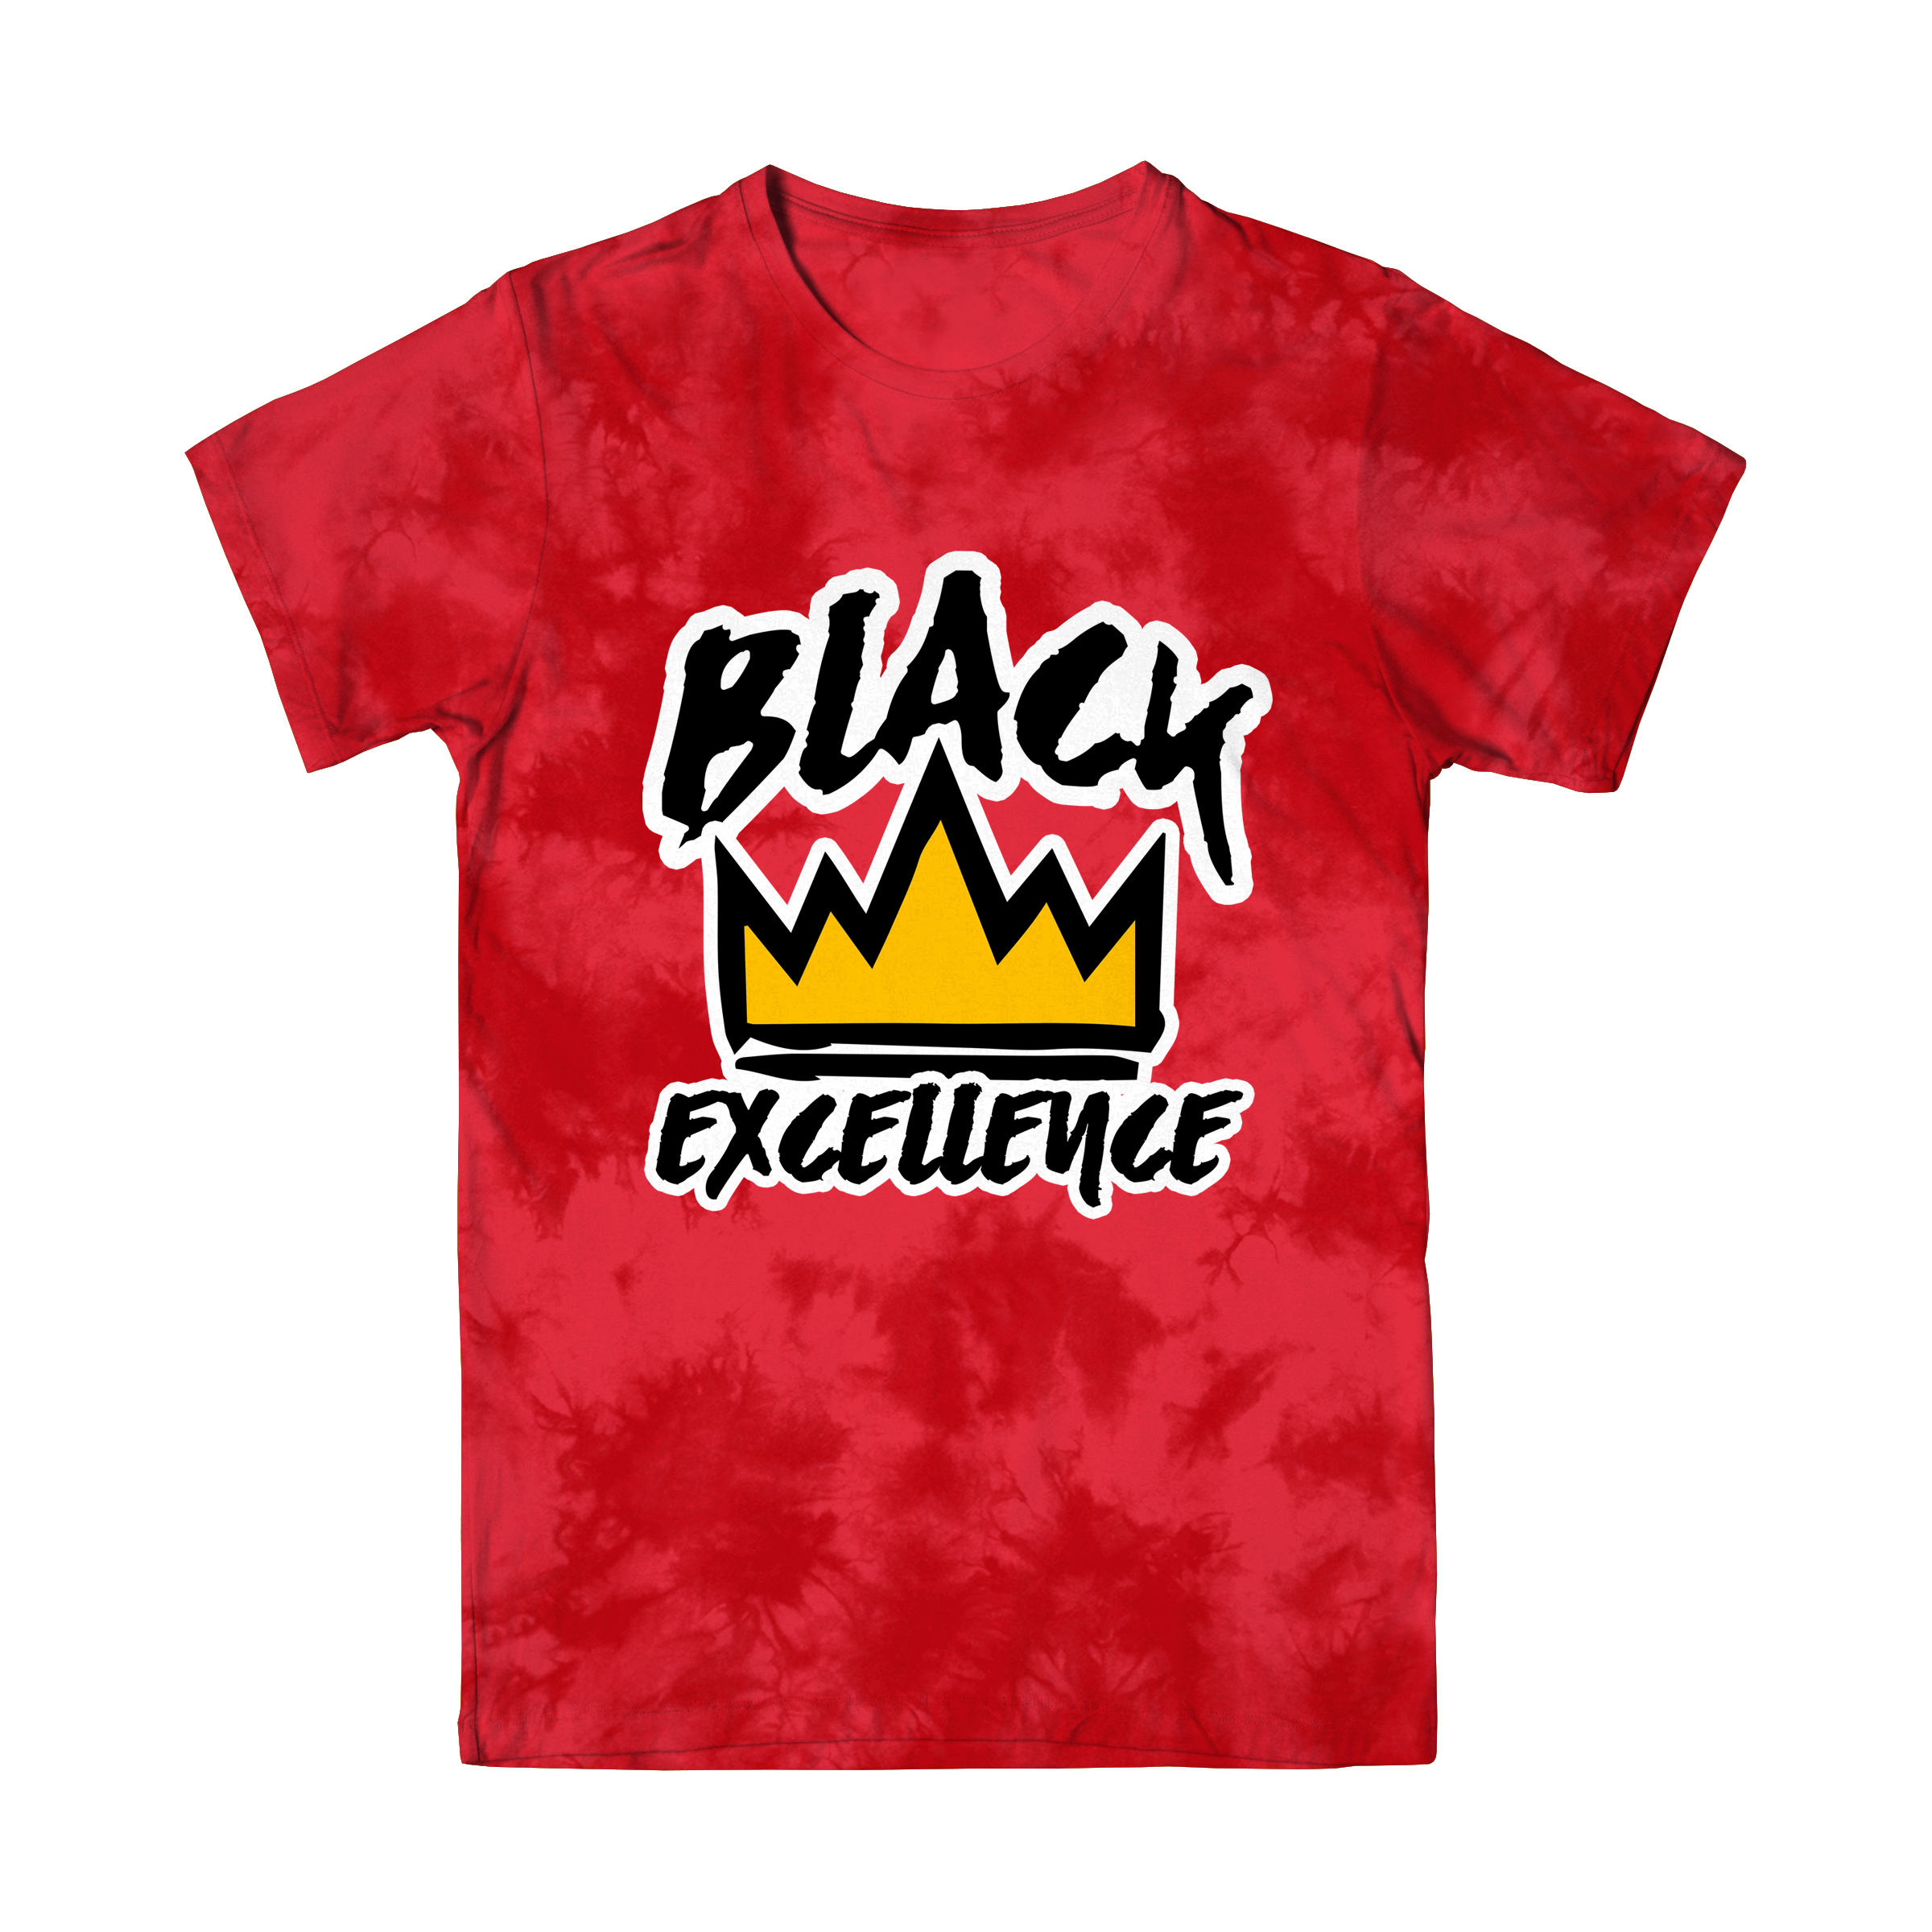 Red Tie-Dye Black Excellence T Shirt (Ships out March 15)